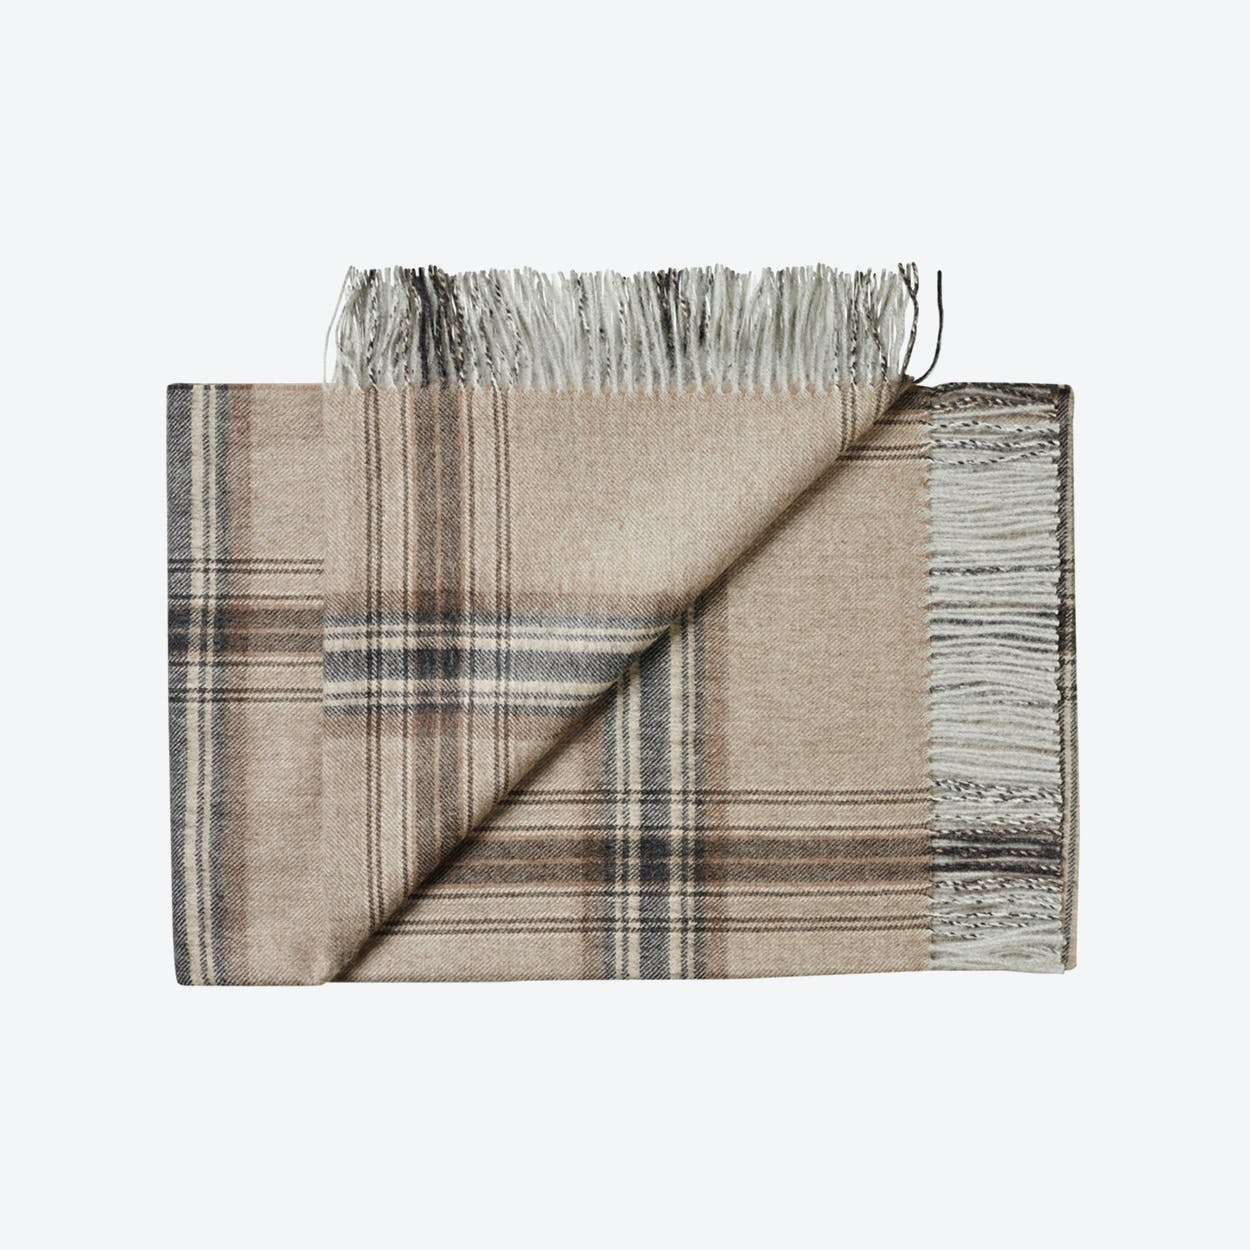 Buenos Aires Baby Alpaca Throw in Brown